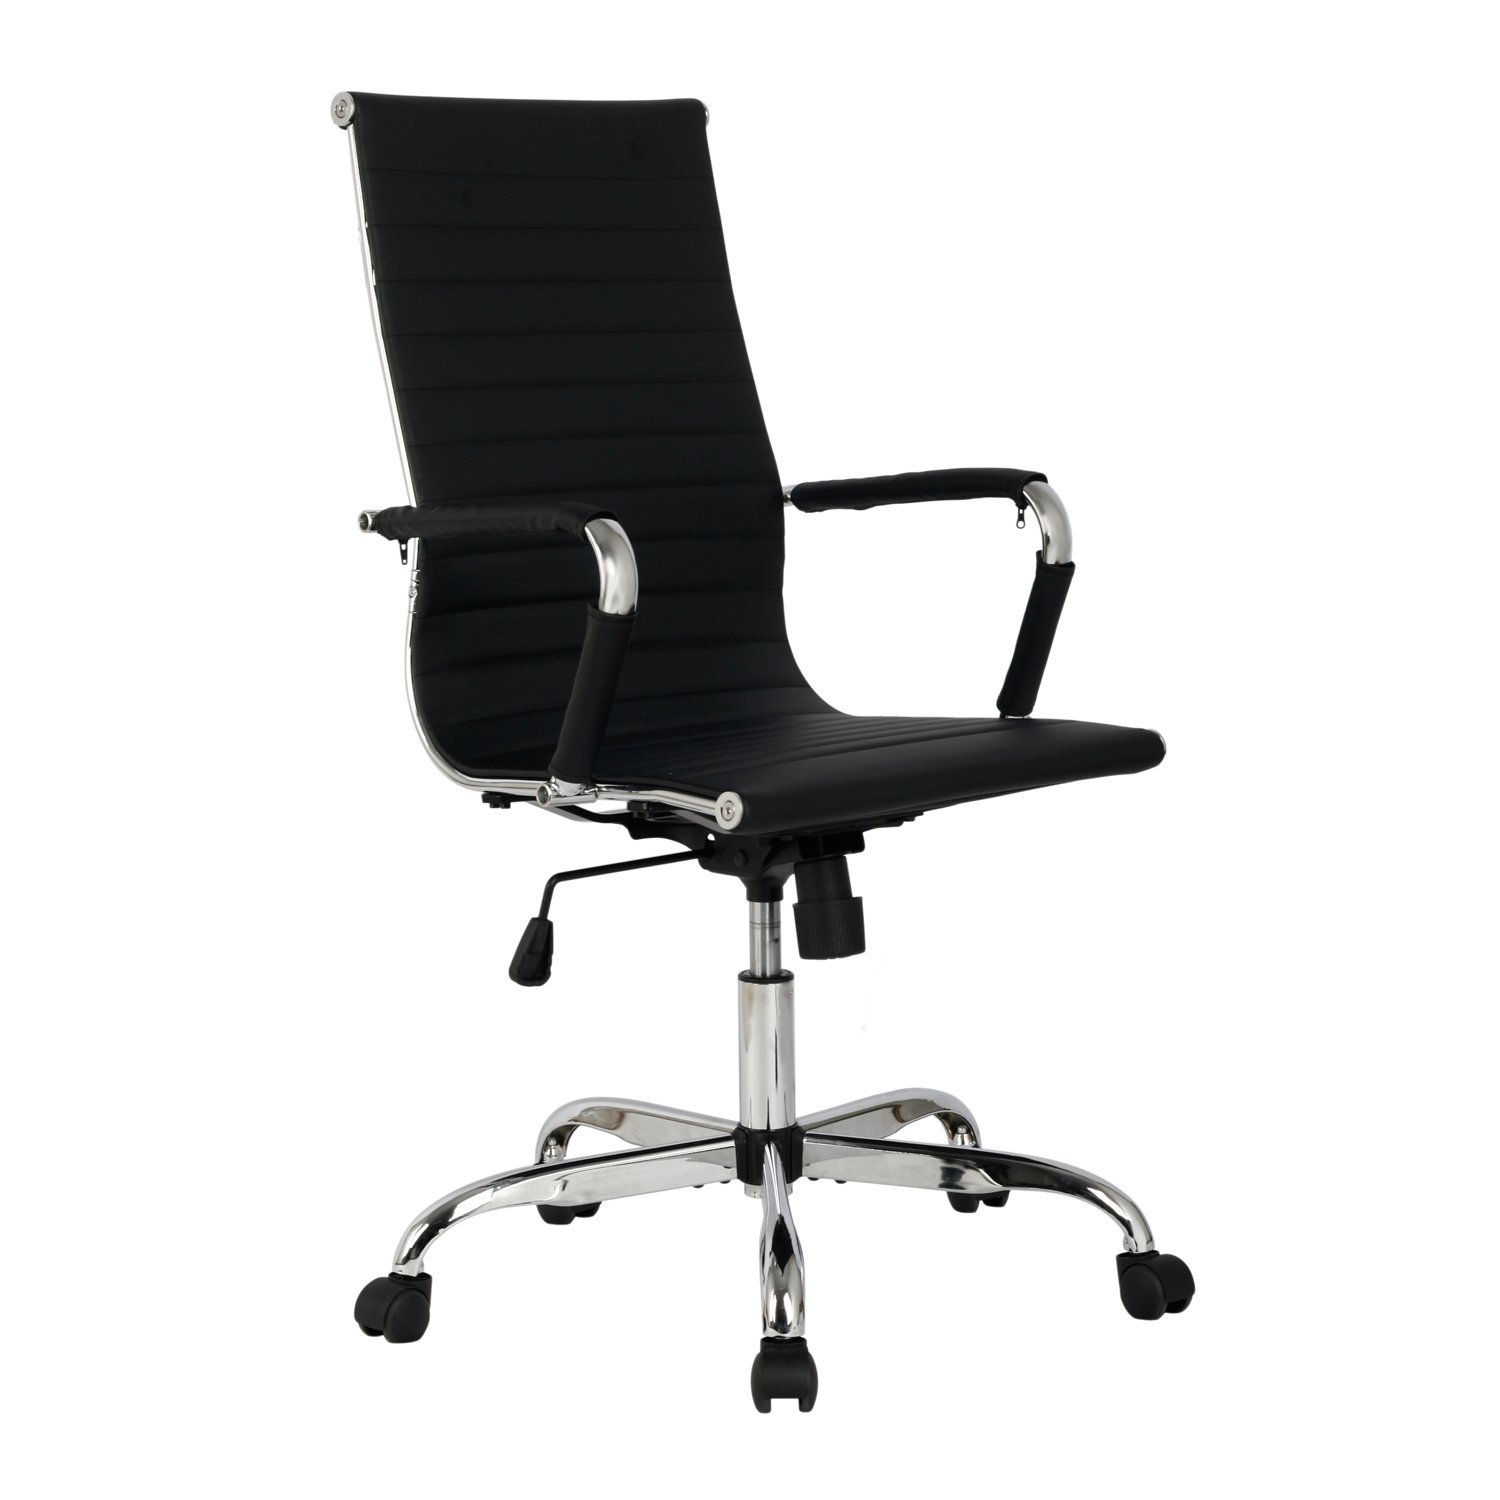 Modern pu leather ergonomic high back office chair for Modern executive office chairs